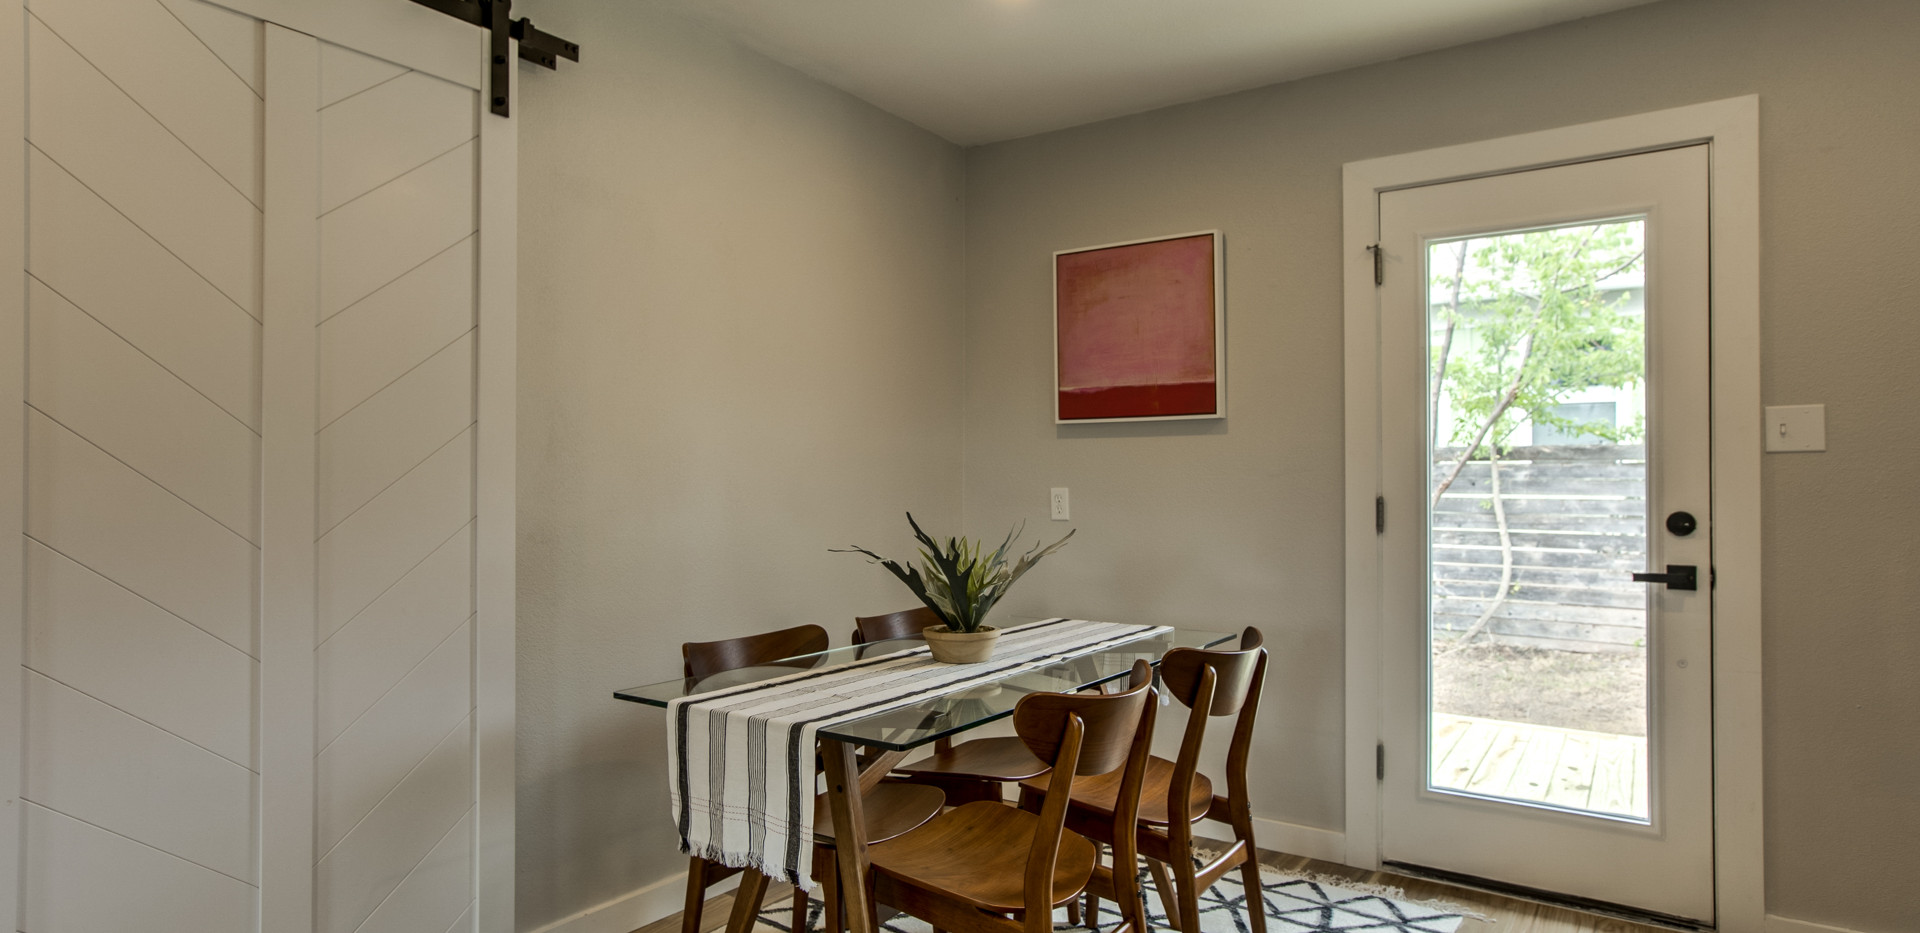 New York Dining Space